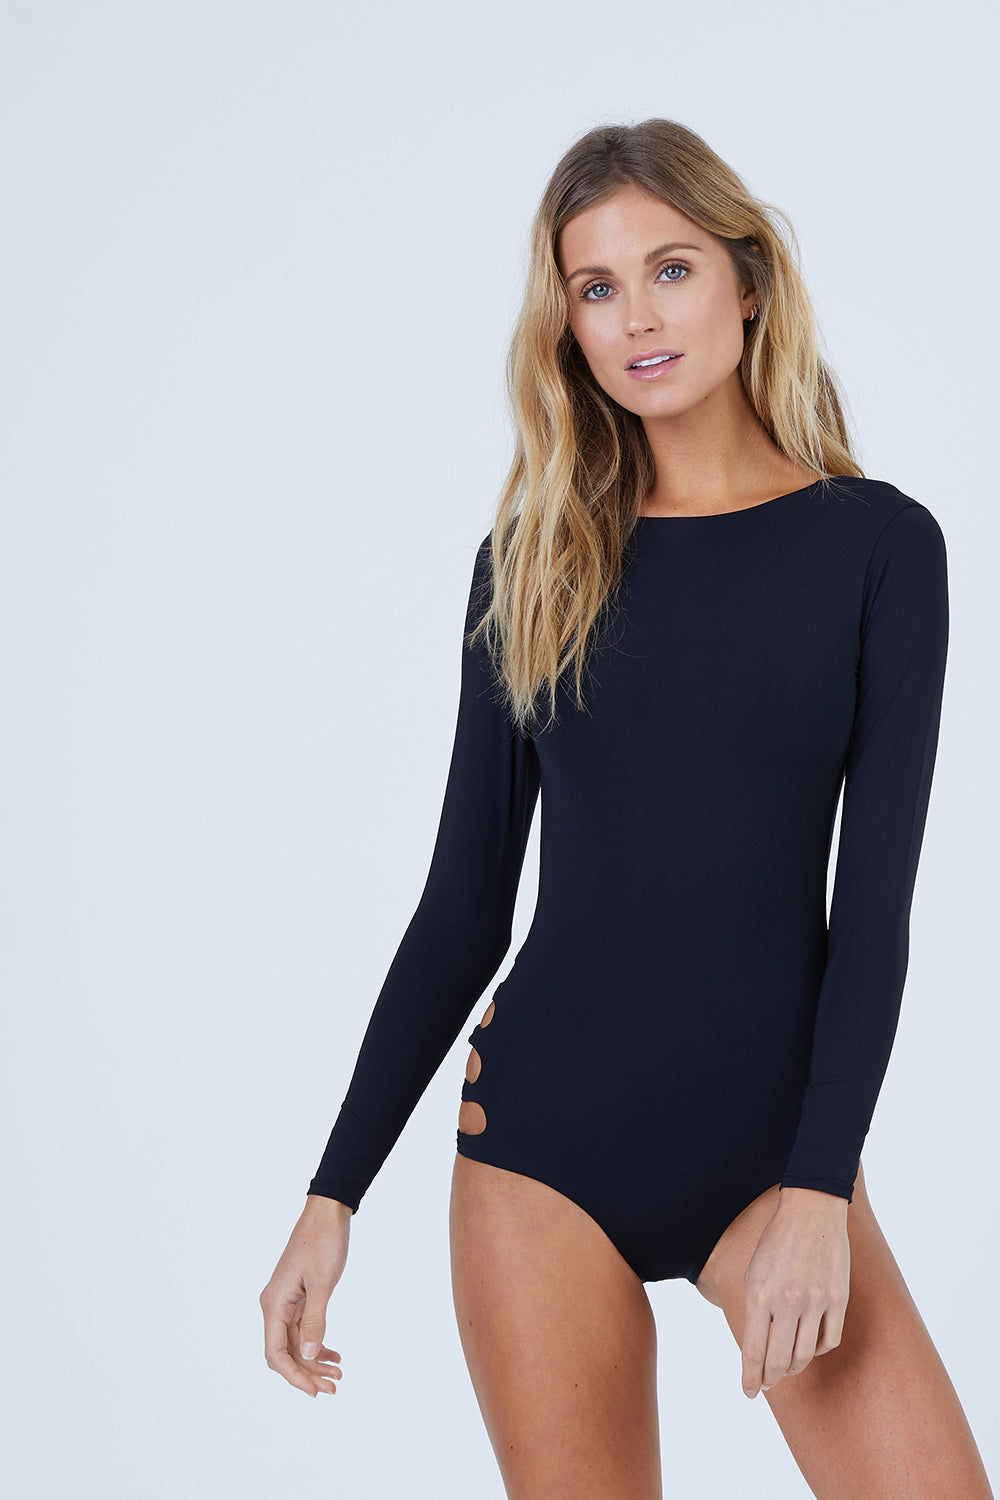 MALAI Long Sleeve Rashguard One Piece Swimsuit - Black One Piece   Black  Malai Long Sleeve One Piece Swimsuit - Black. Features:   Long Sleeves Higher Neckline  Scoop Back High Cut Leg  Cheeky Coverage Front View